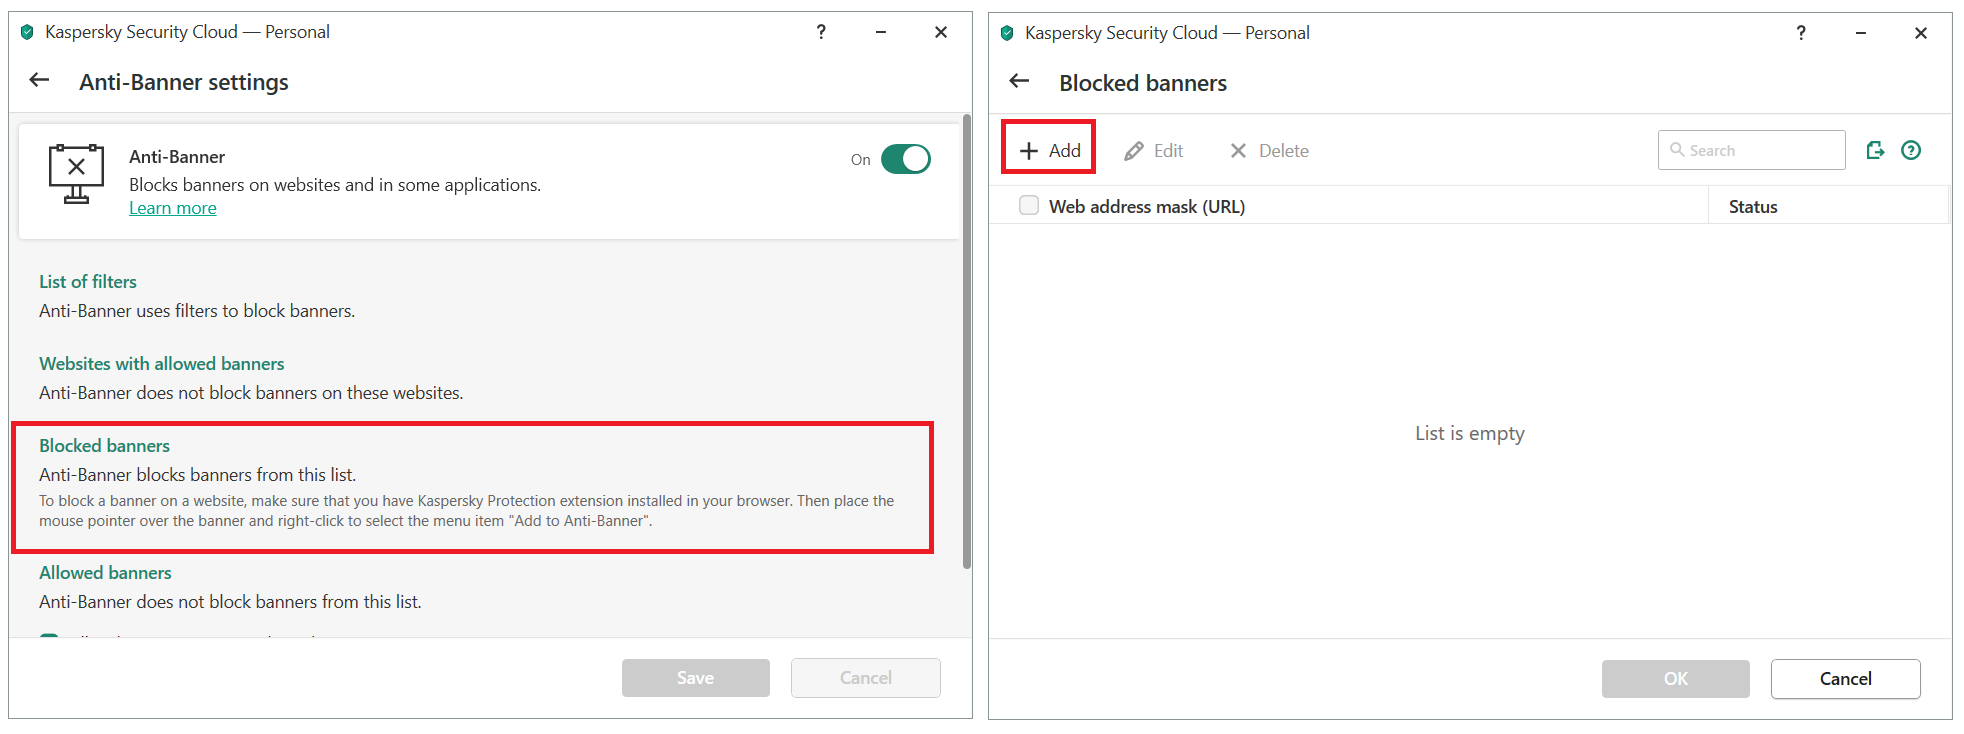 Adding a banner to the blocklist in Kaspersky Security Cloud